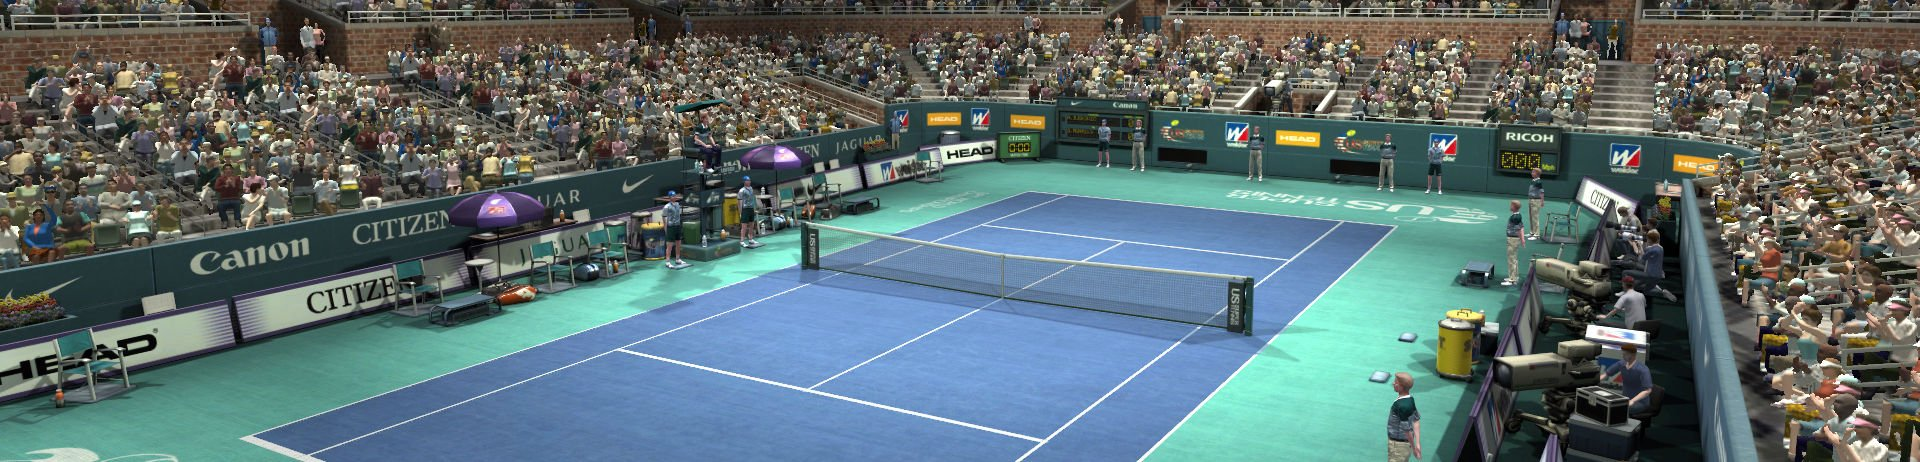 virtua tennis 41